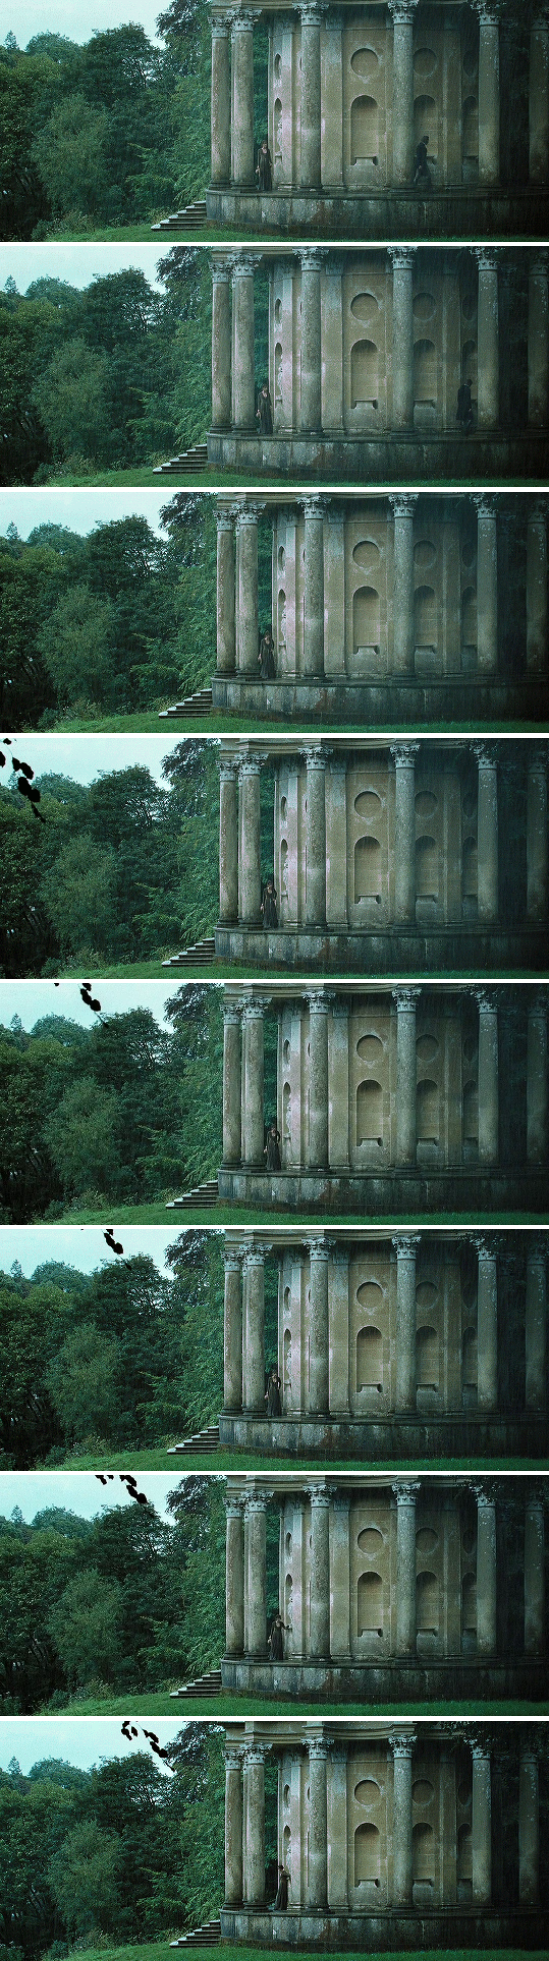 Pride and Prejudice (2005) dir. Joe Wright #prideandprejudice Pride and Prejudice (2005) dir. Joe Wright #prideandprejudice